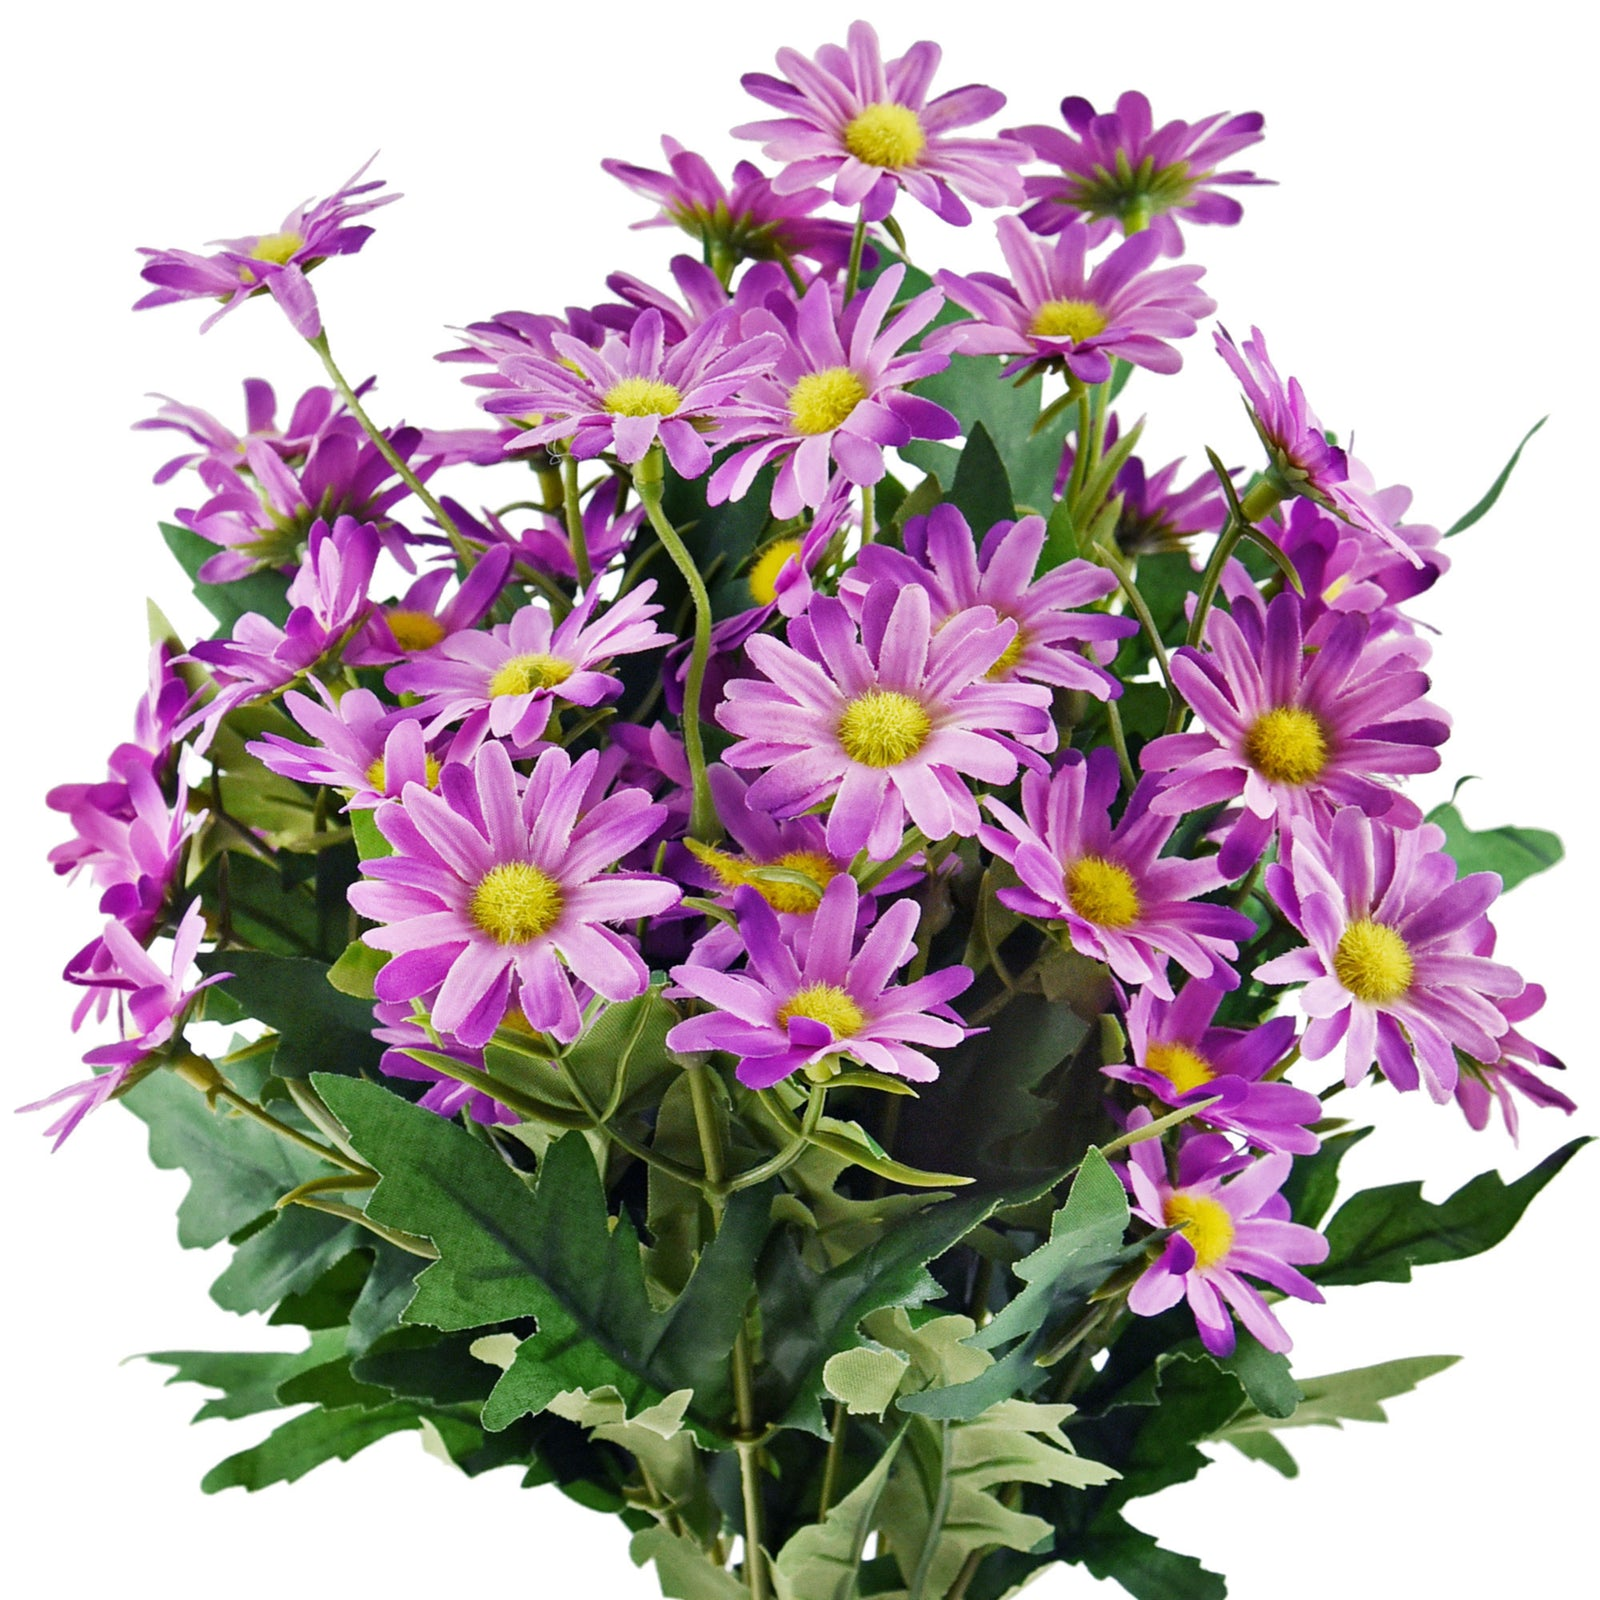 Daisy Silk Flowers Outdoor Artificial Flowers Arrangements (Majestic Purple) 2 Bunches